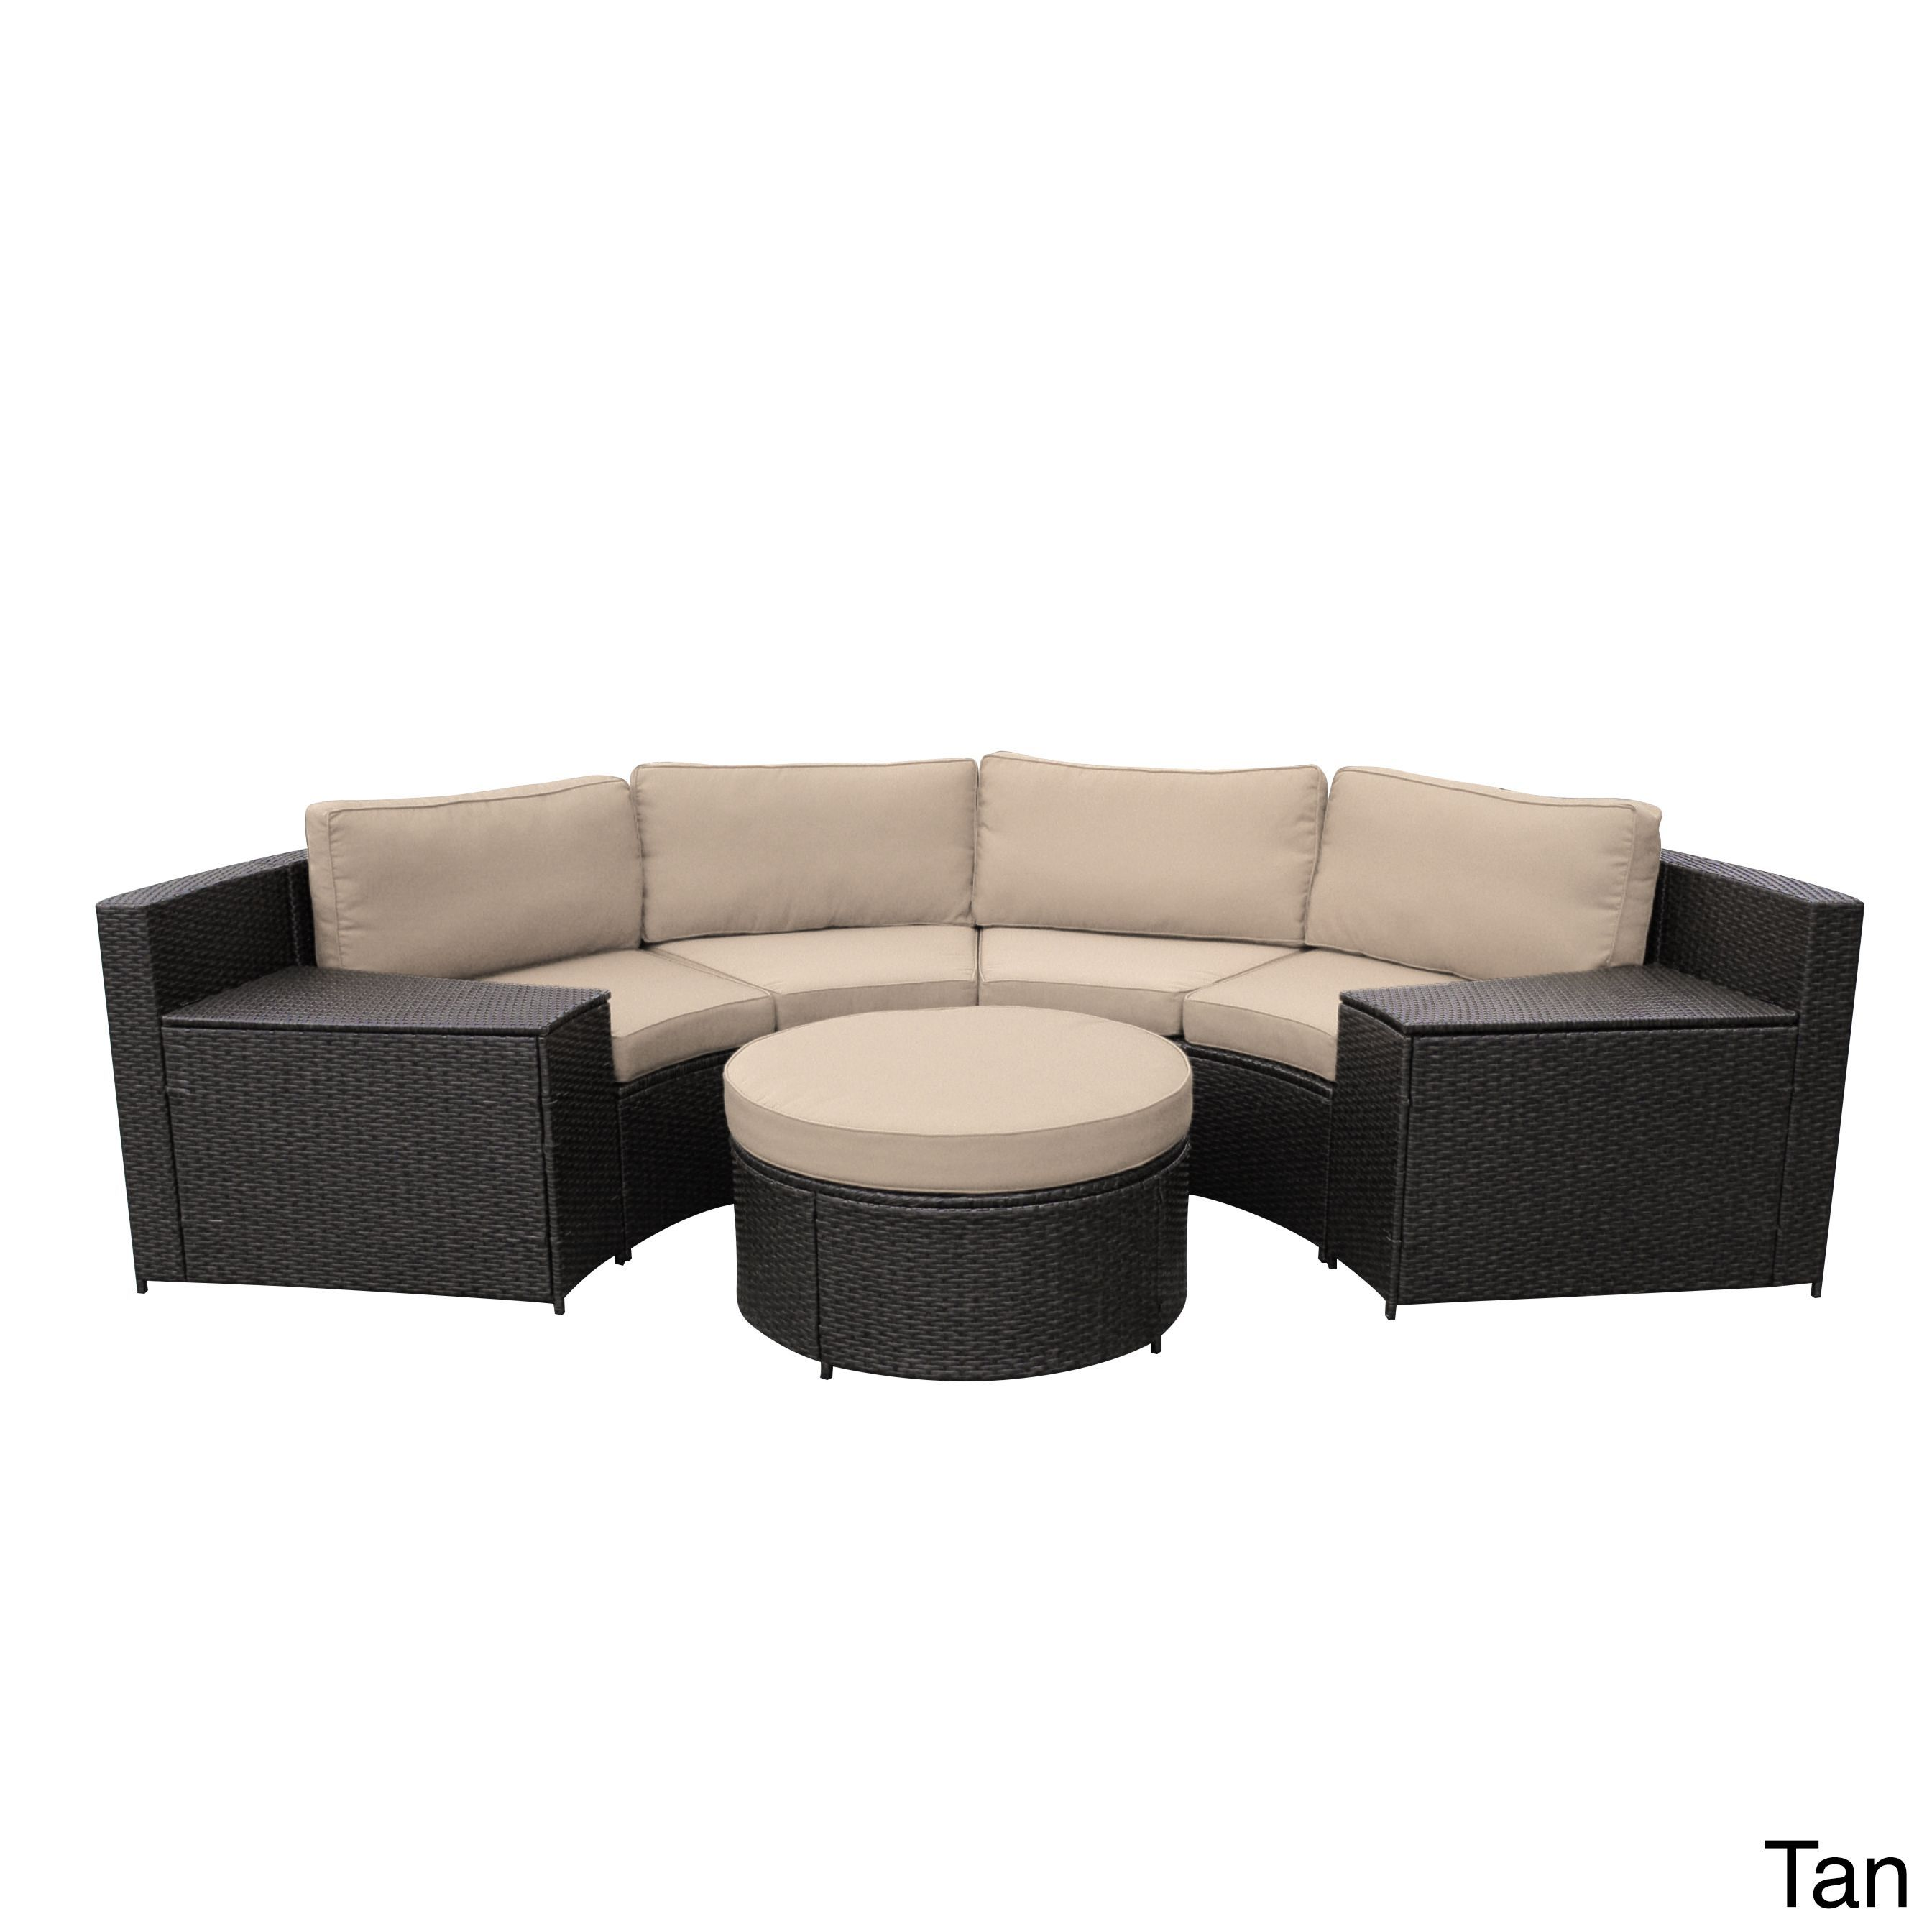 Jeco Cartagena Curved Modular Wicker Sofa With Cushions Tan Size 5 Piece Sets Patio Furniture